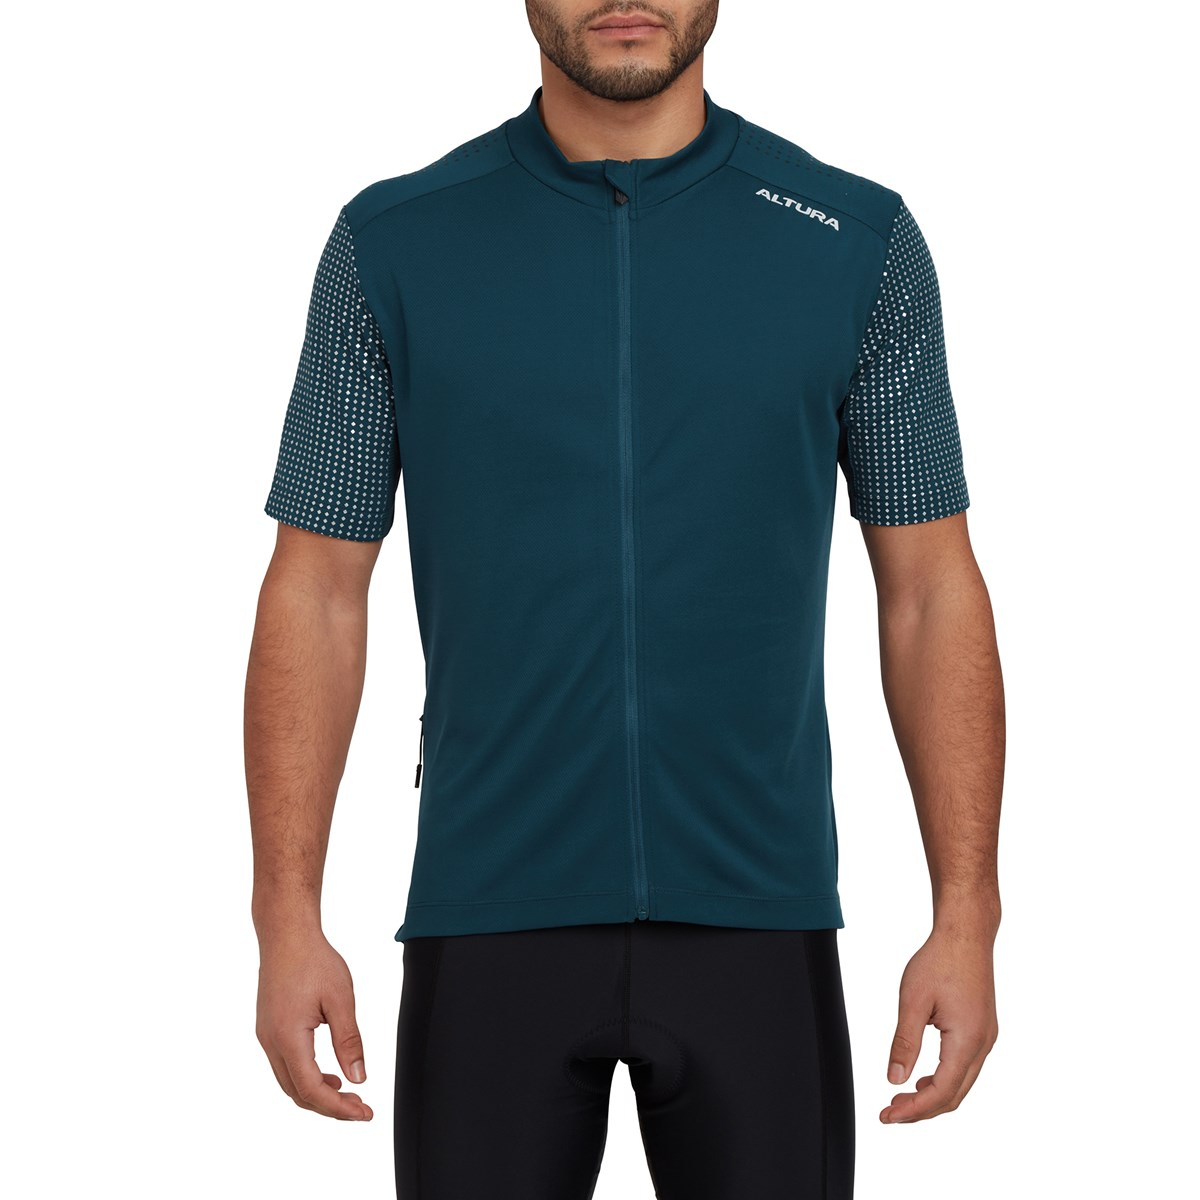 Nightvision Men's Short Sleeve Jersey